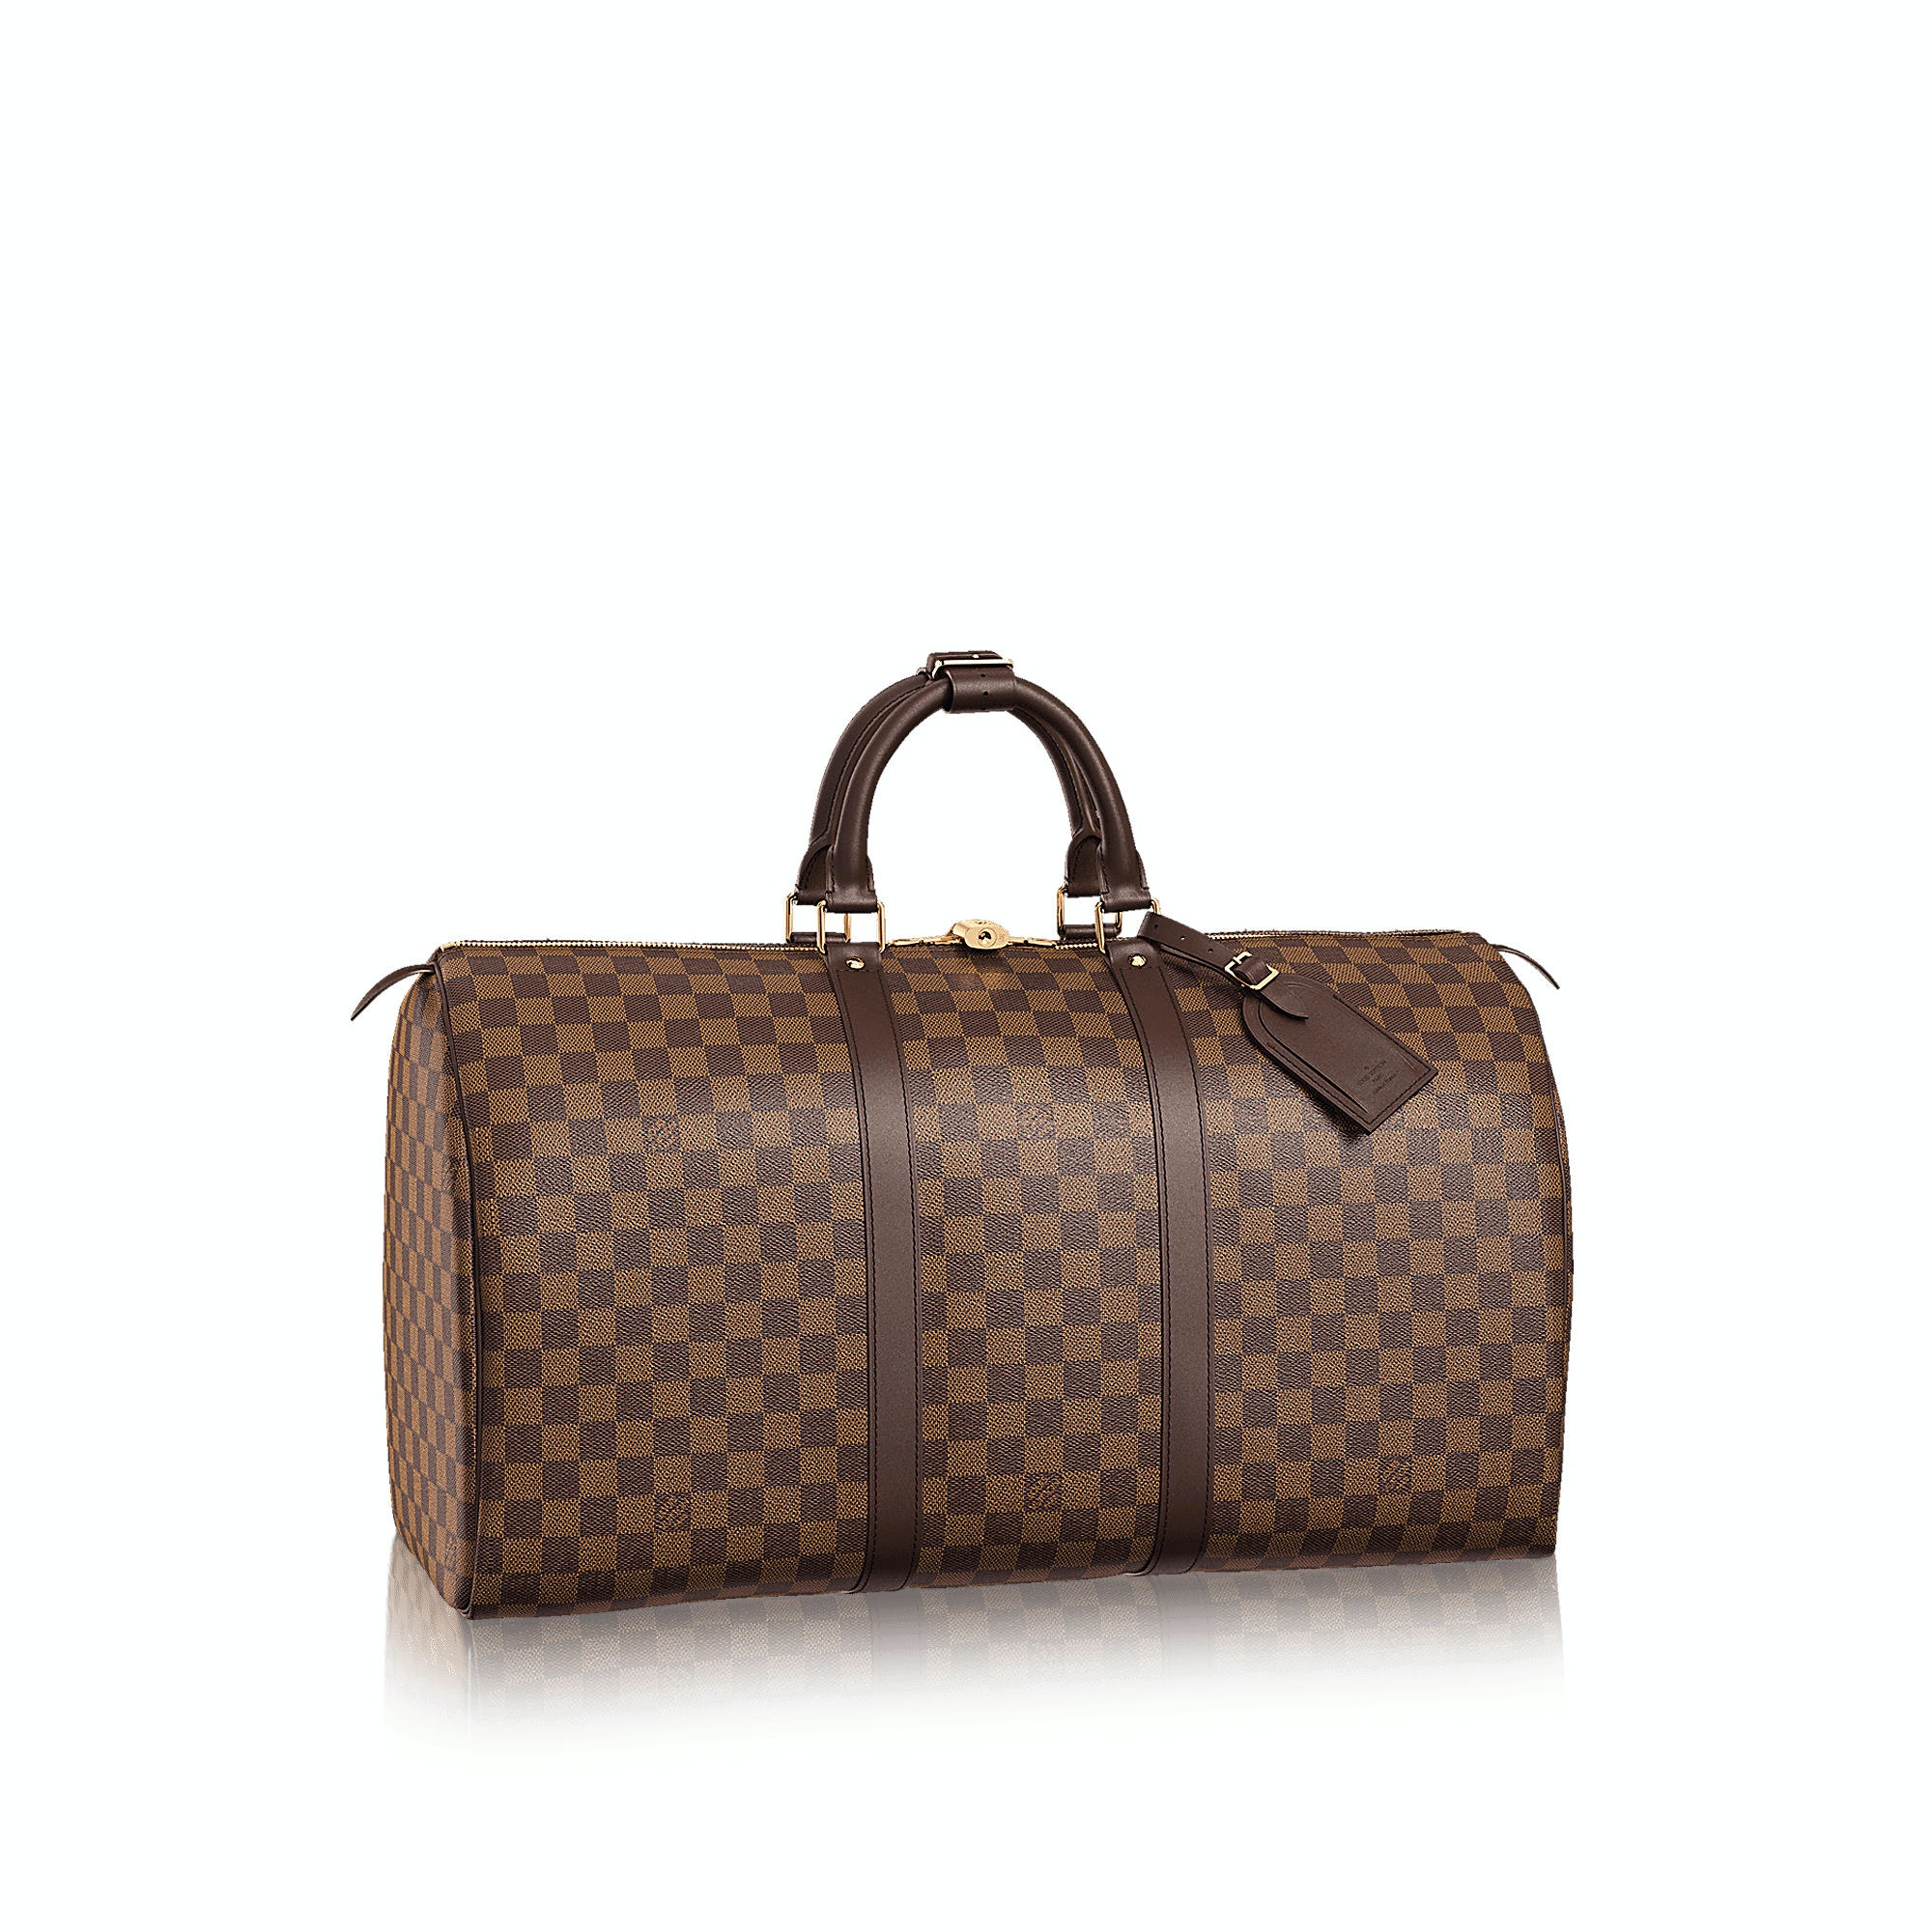 Louis Vuitton Keepall Damier Ebene (With Accessories) 50 Brown